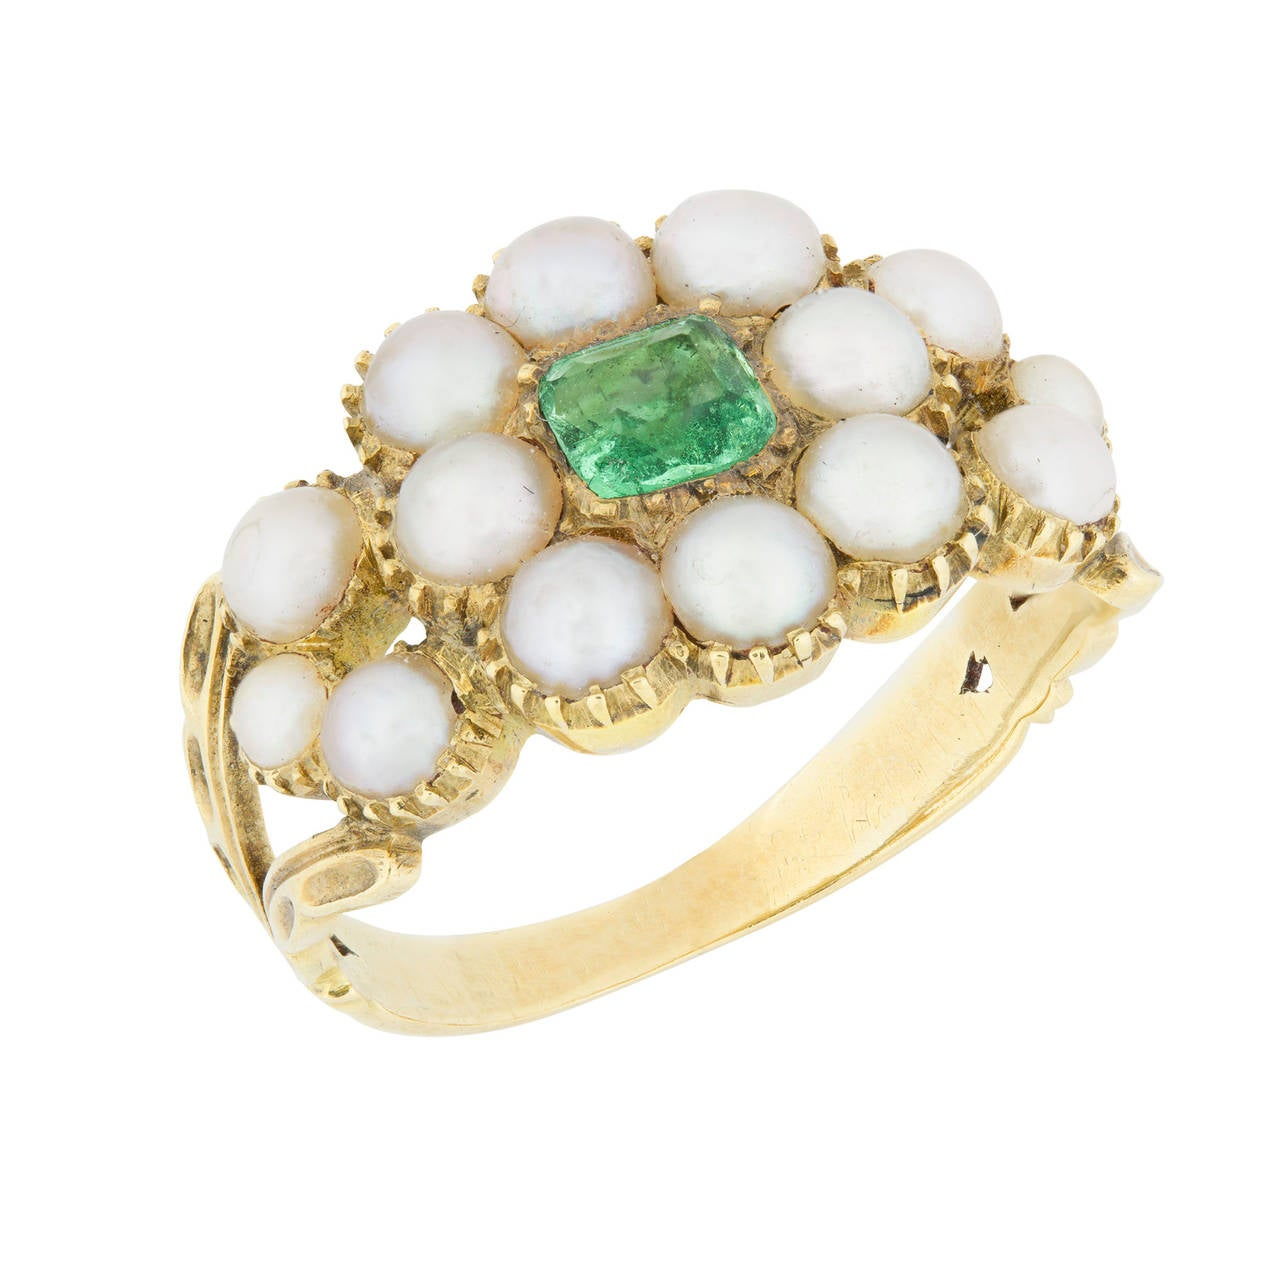 Museum Quality Regency Pearl Emerald Gold Cluster Ring 2